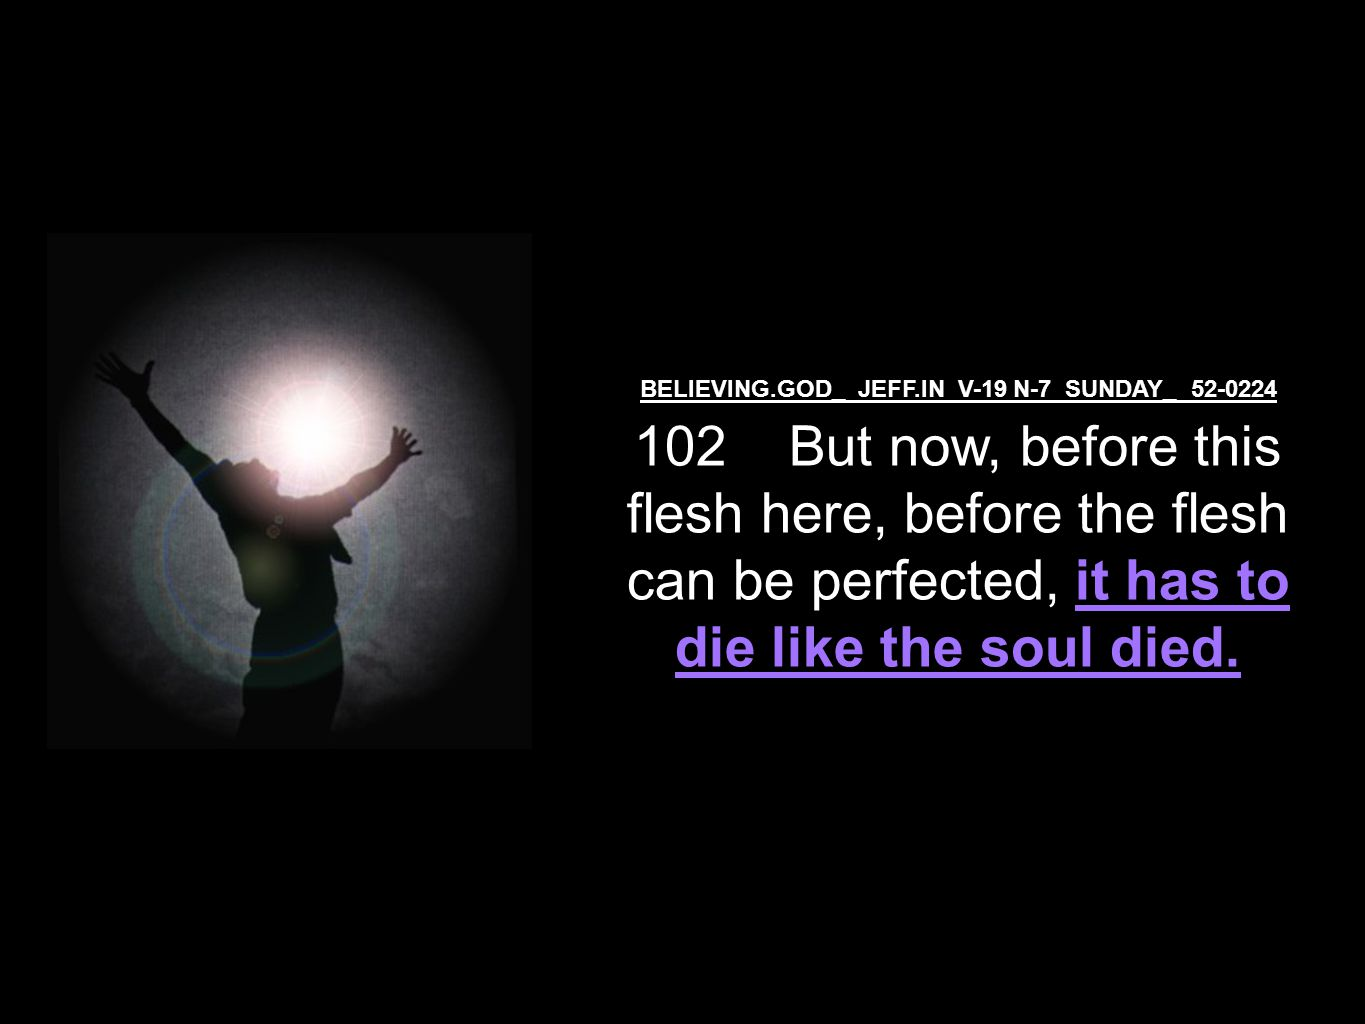 BELIEVING.GOD_ JEFF.IN V-19 N-7 SUNDAY_ 52-0224 102 But now, before this flesh here, before the flesh can be perfected, it has to die like the soul died.